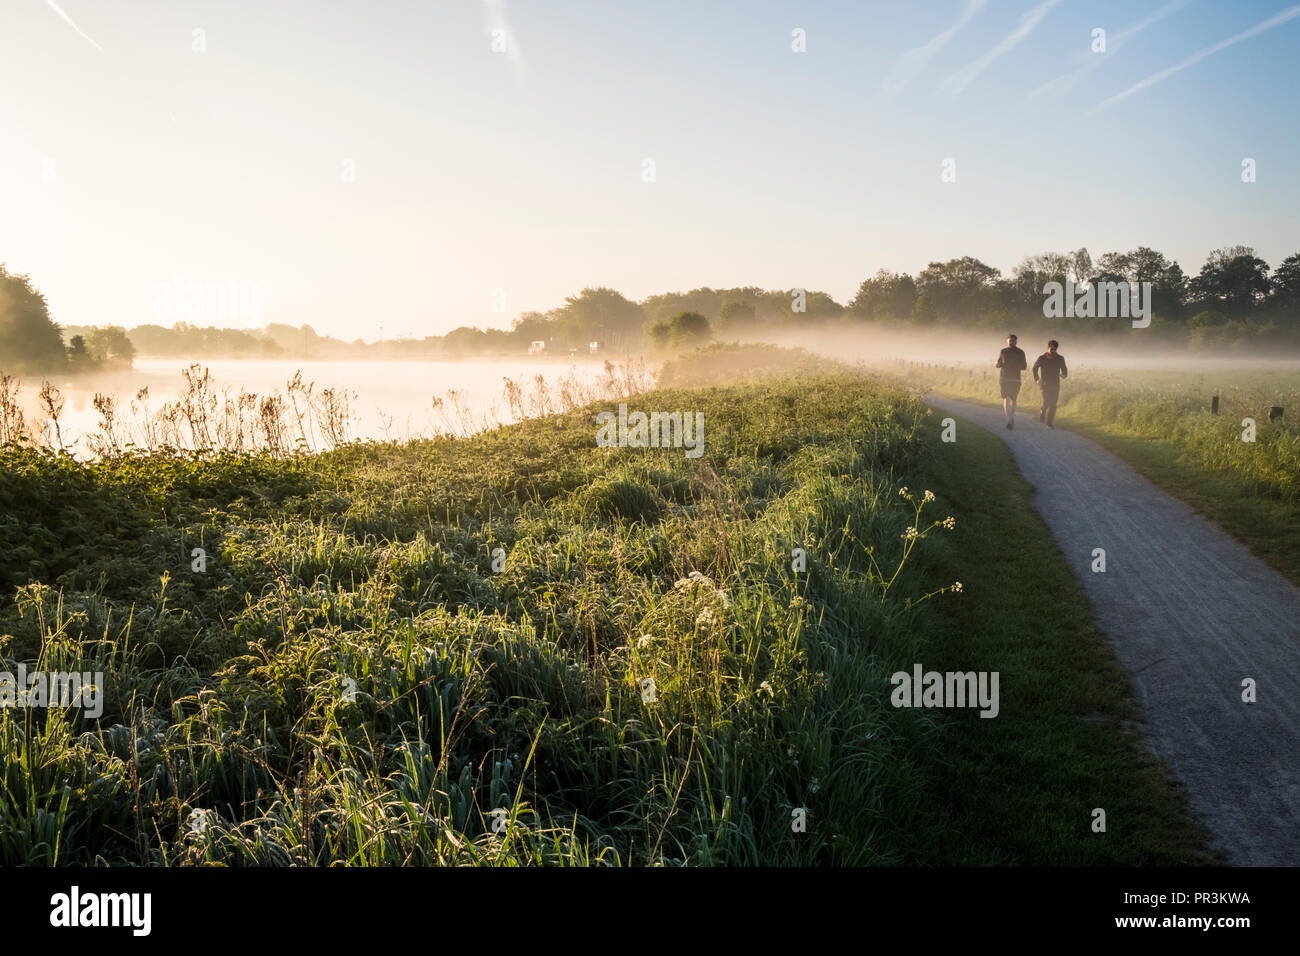 Early morning runners. Two people running alongside the River Trent, Nottinghamshire, England, UK - Stock Image